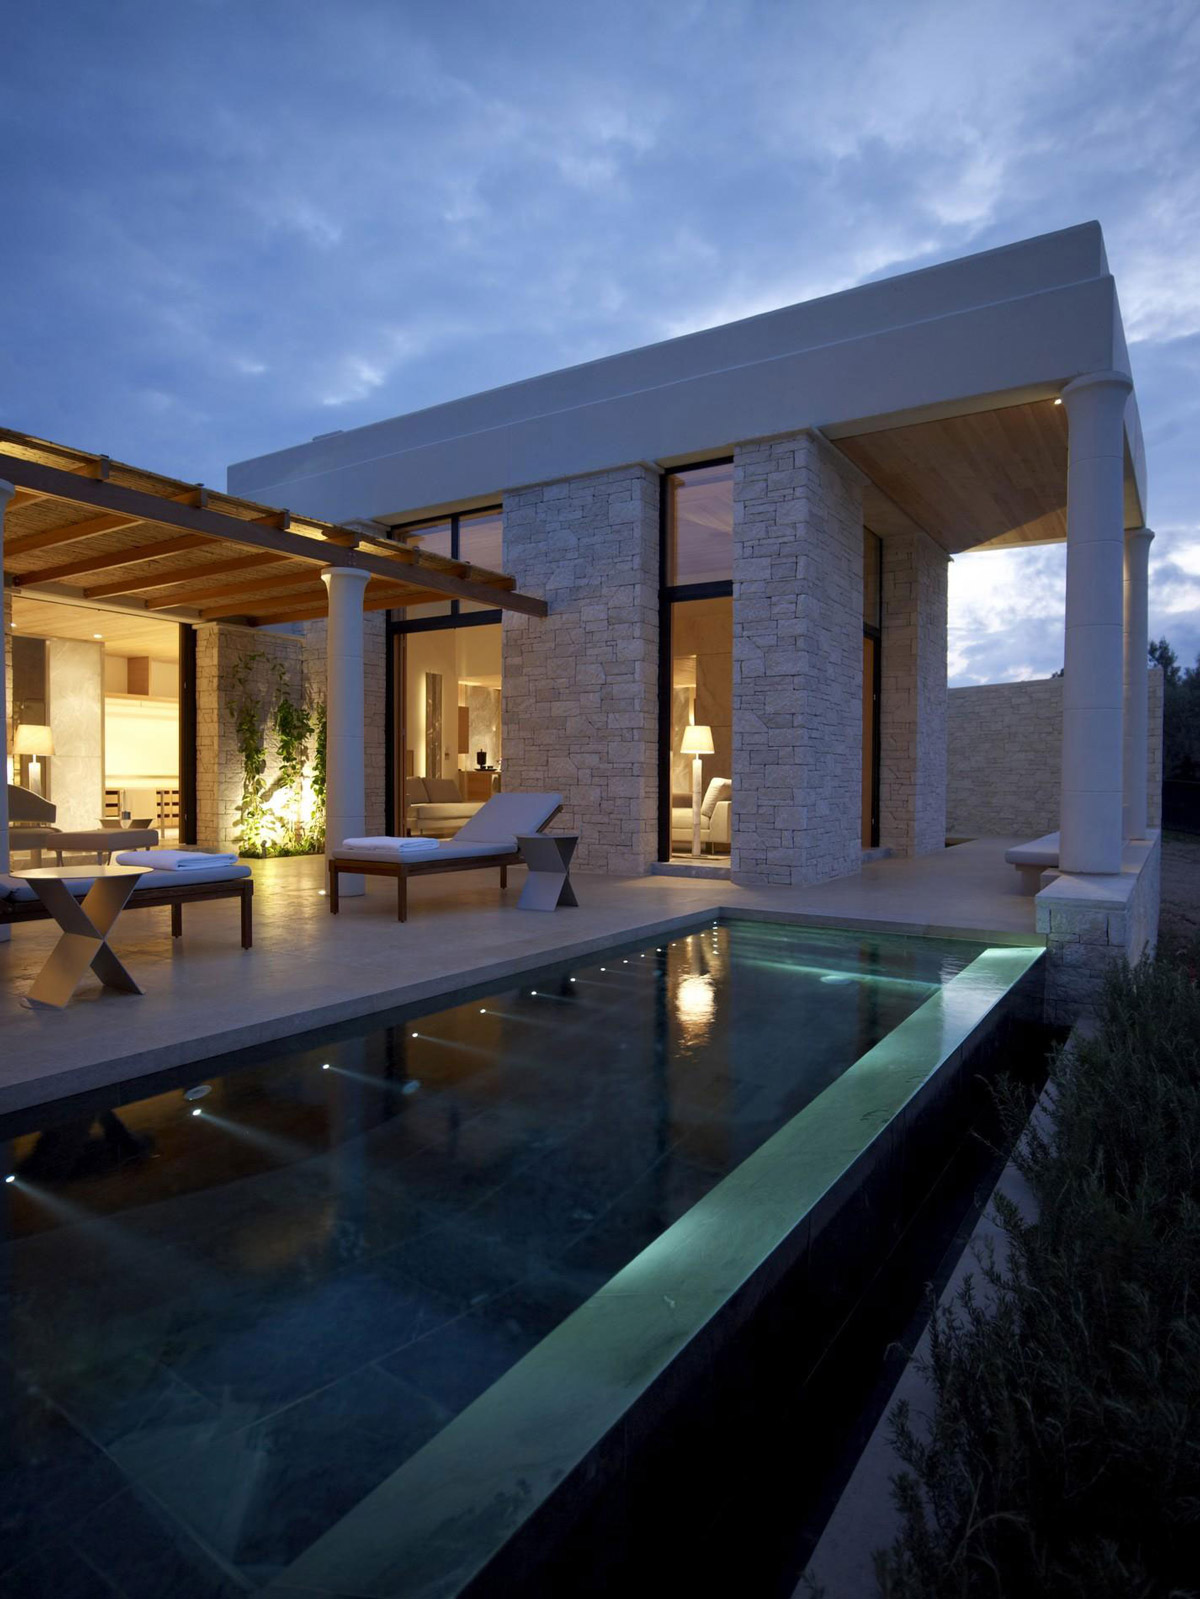 Infinity Pool, Terrace, Outdoor Furniture, Elegant Villas in Kranidi, Greece